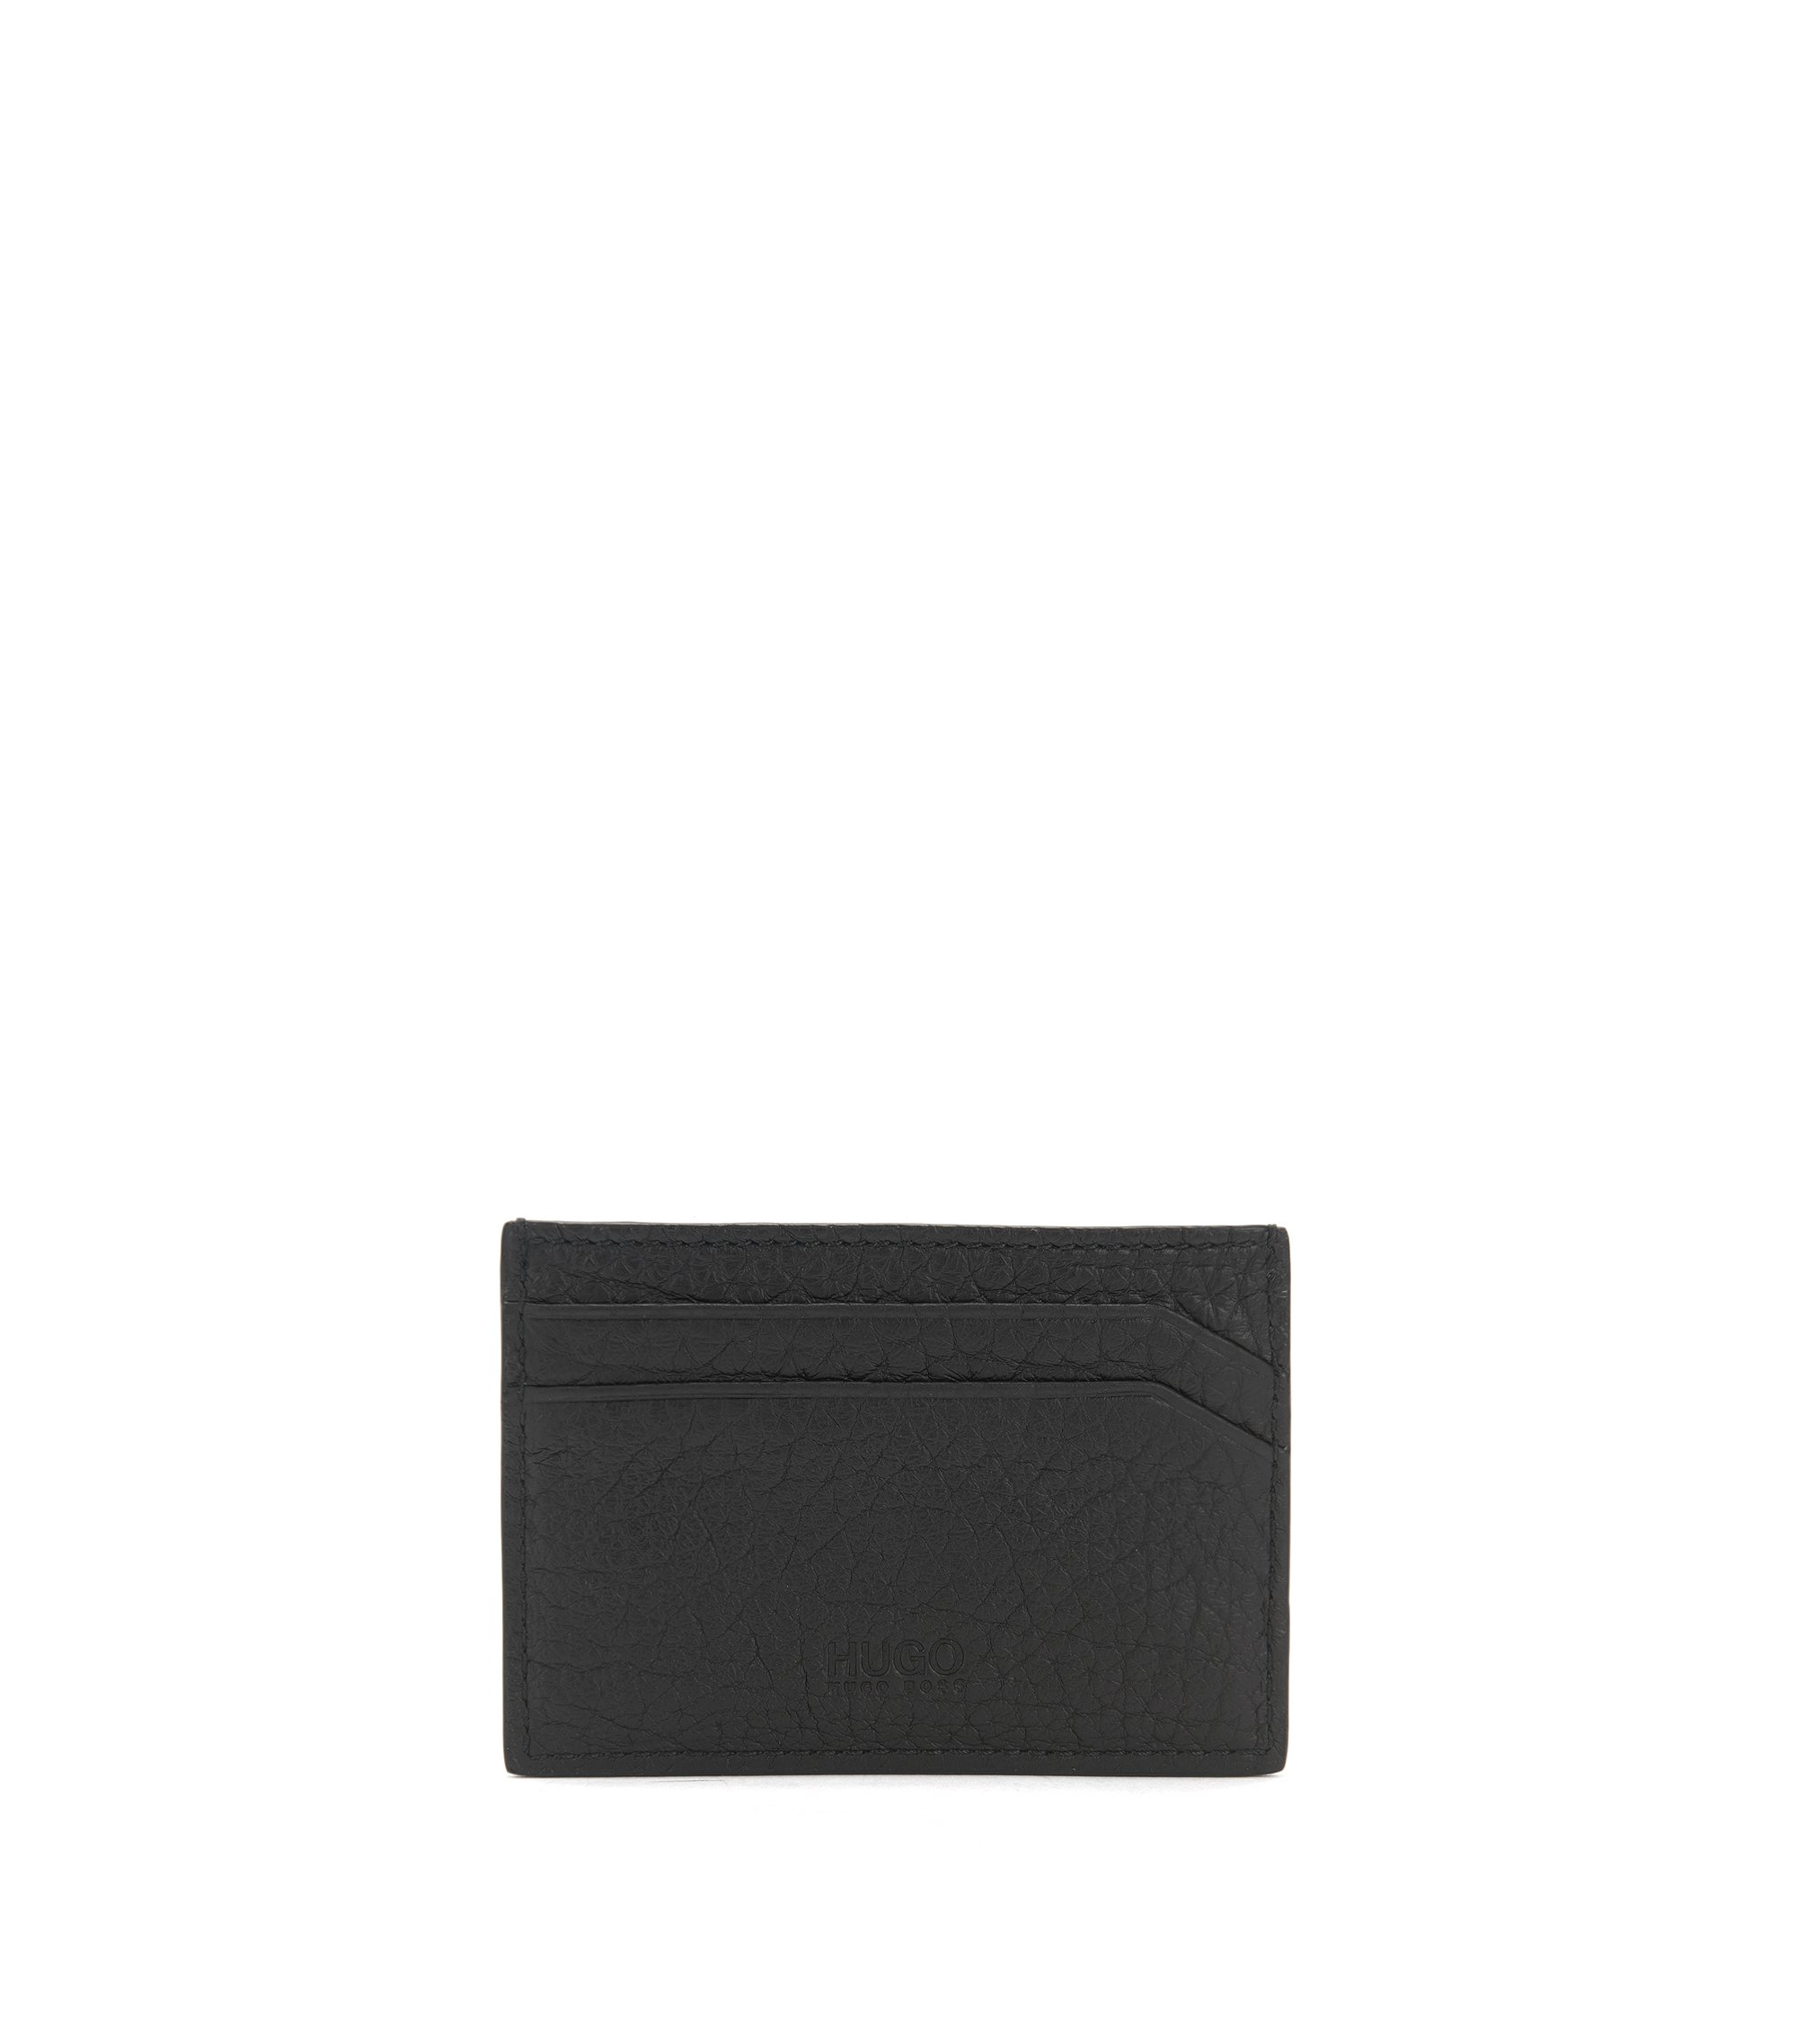 Studded card holder in textured leather, Black